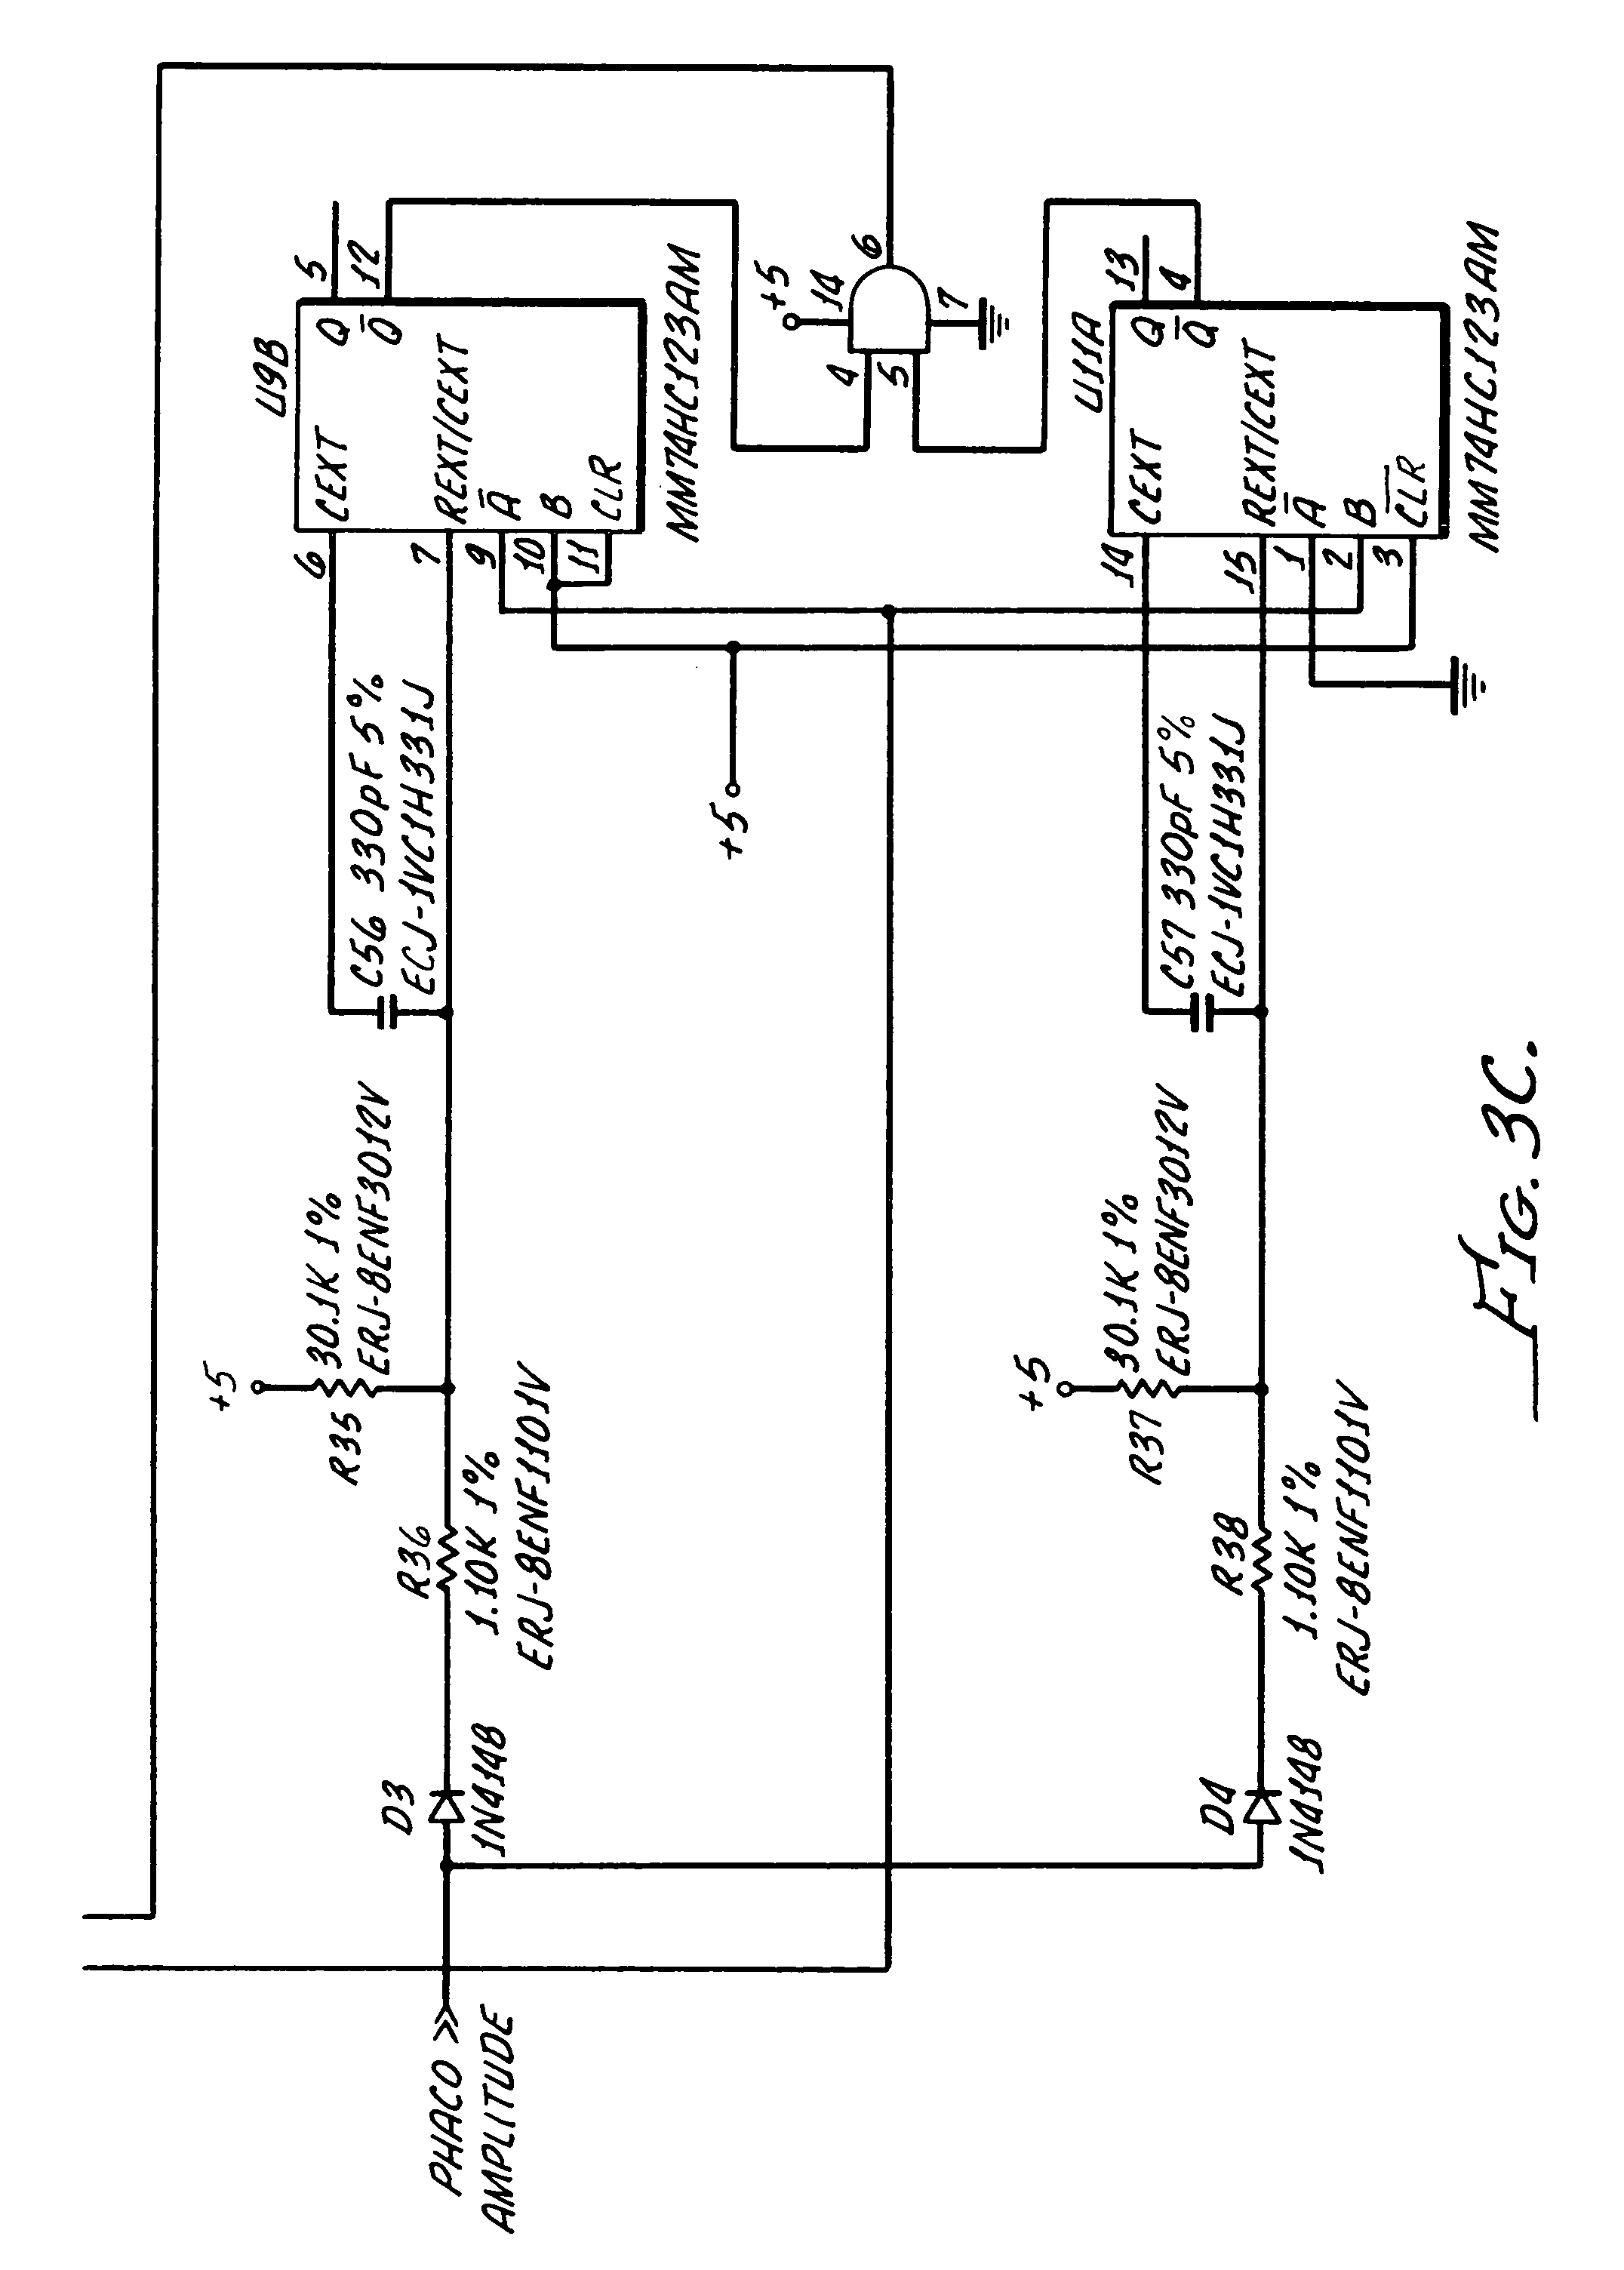 Ultrasonic Transducer Driving Circuit Free Wiring Diagram For You Fogger Controller Patent Us6997935 Resonant Converter Tuning Cleaning Driver